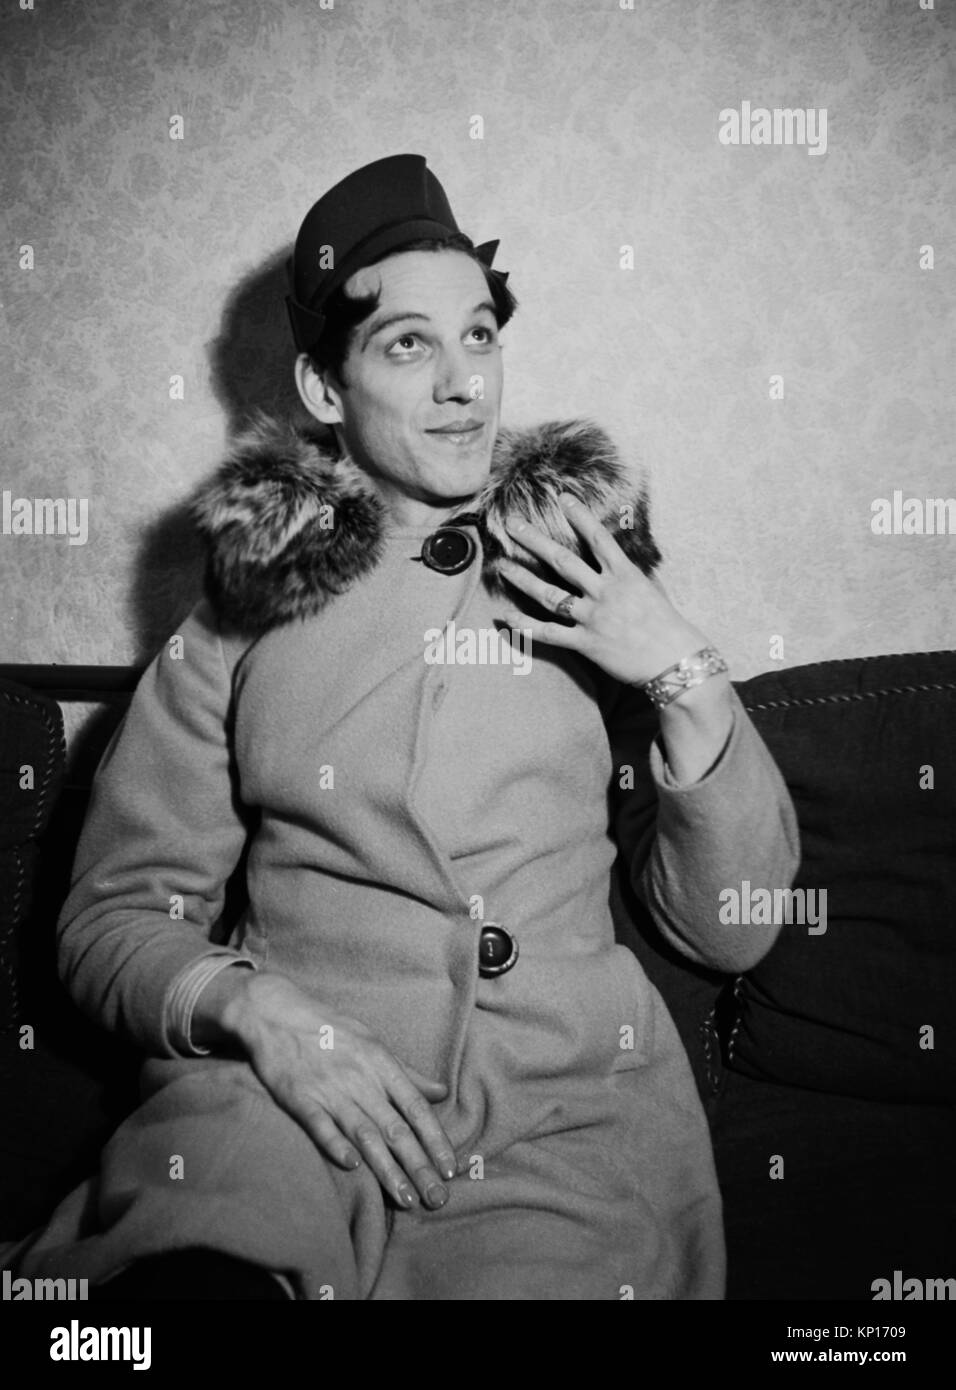 1937 Man in drag and Clack Gable lookalike amateur dramatics photoshoot - Stock Image